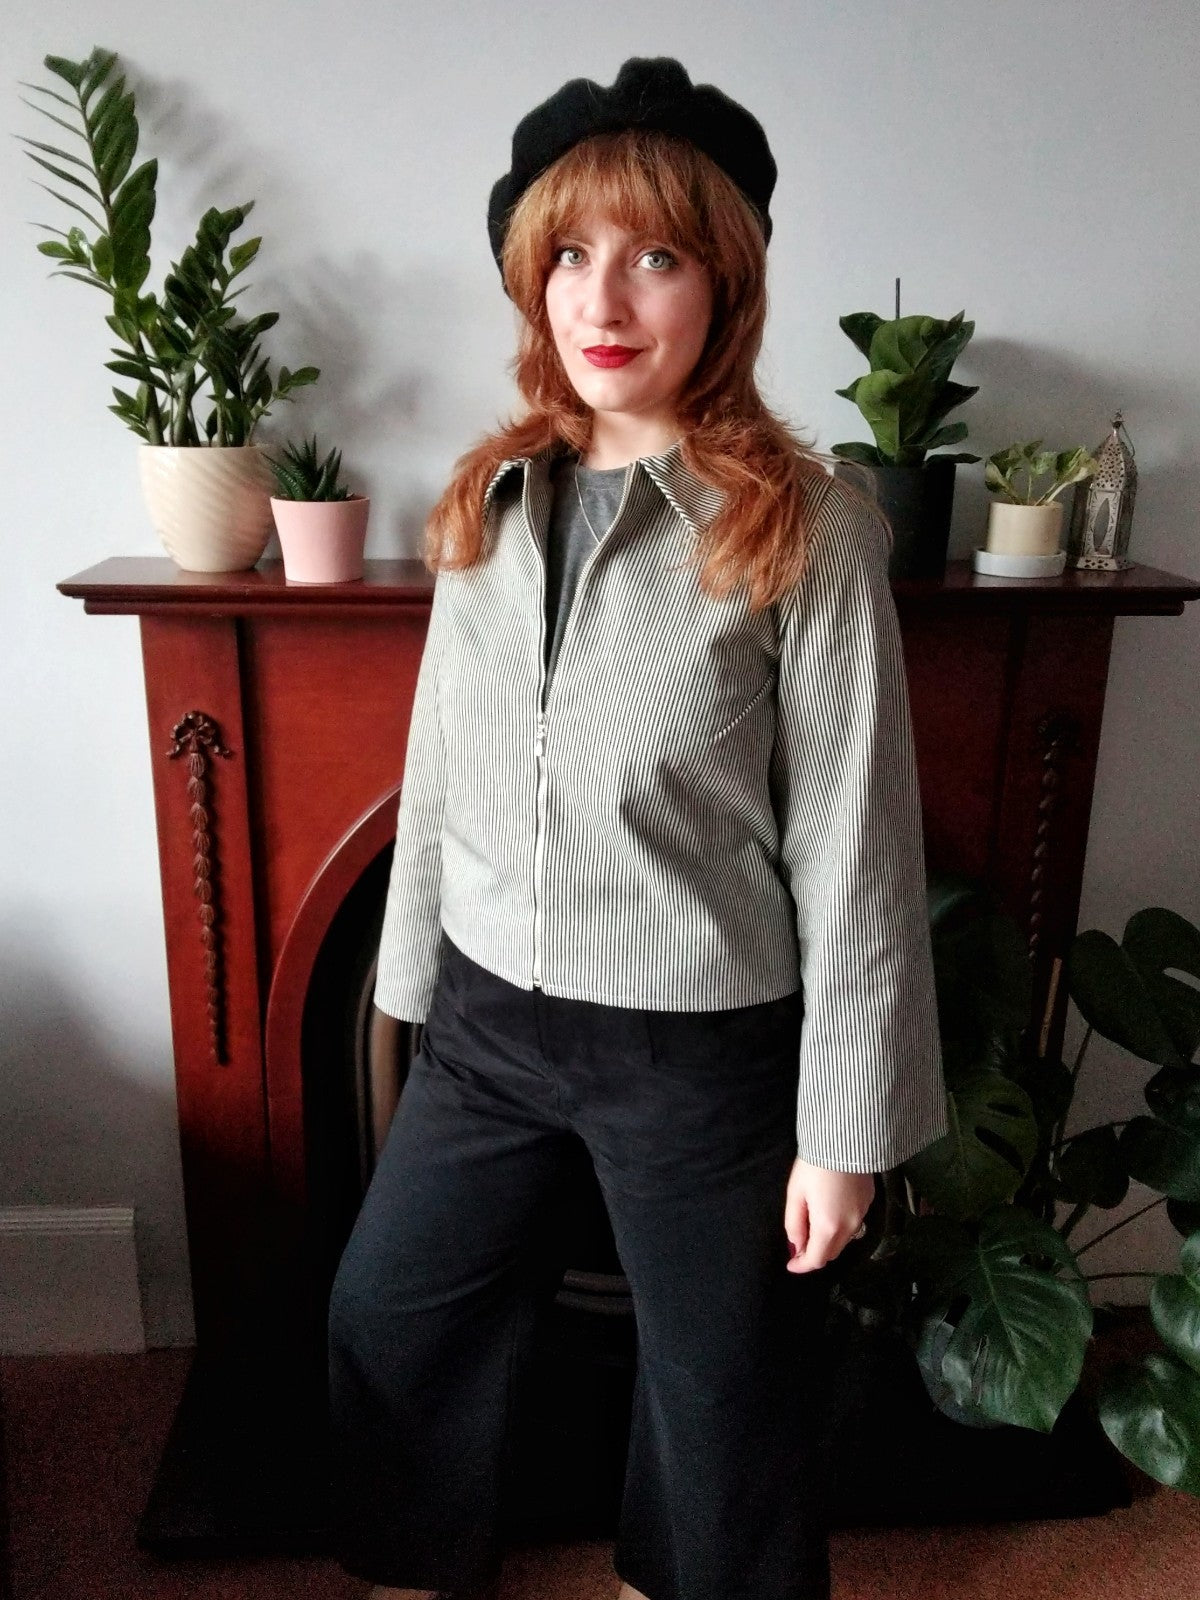 Repurposed sustainable ethical denim skinny stripe jacket